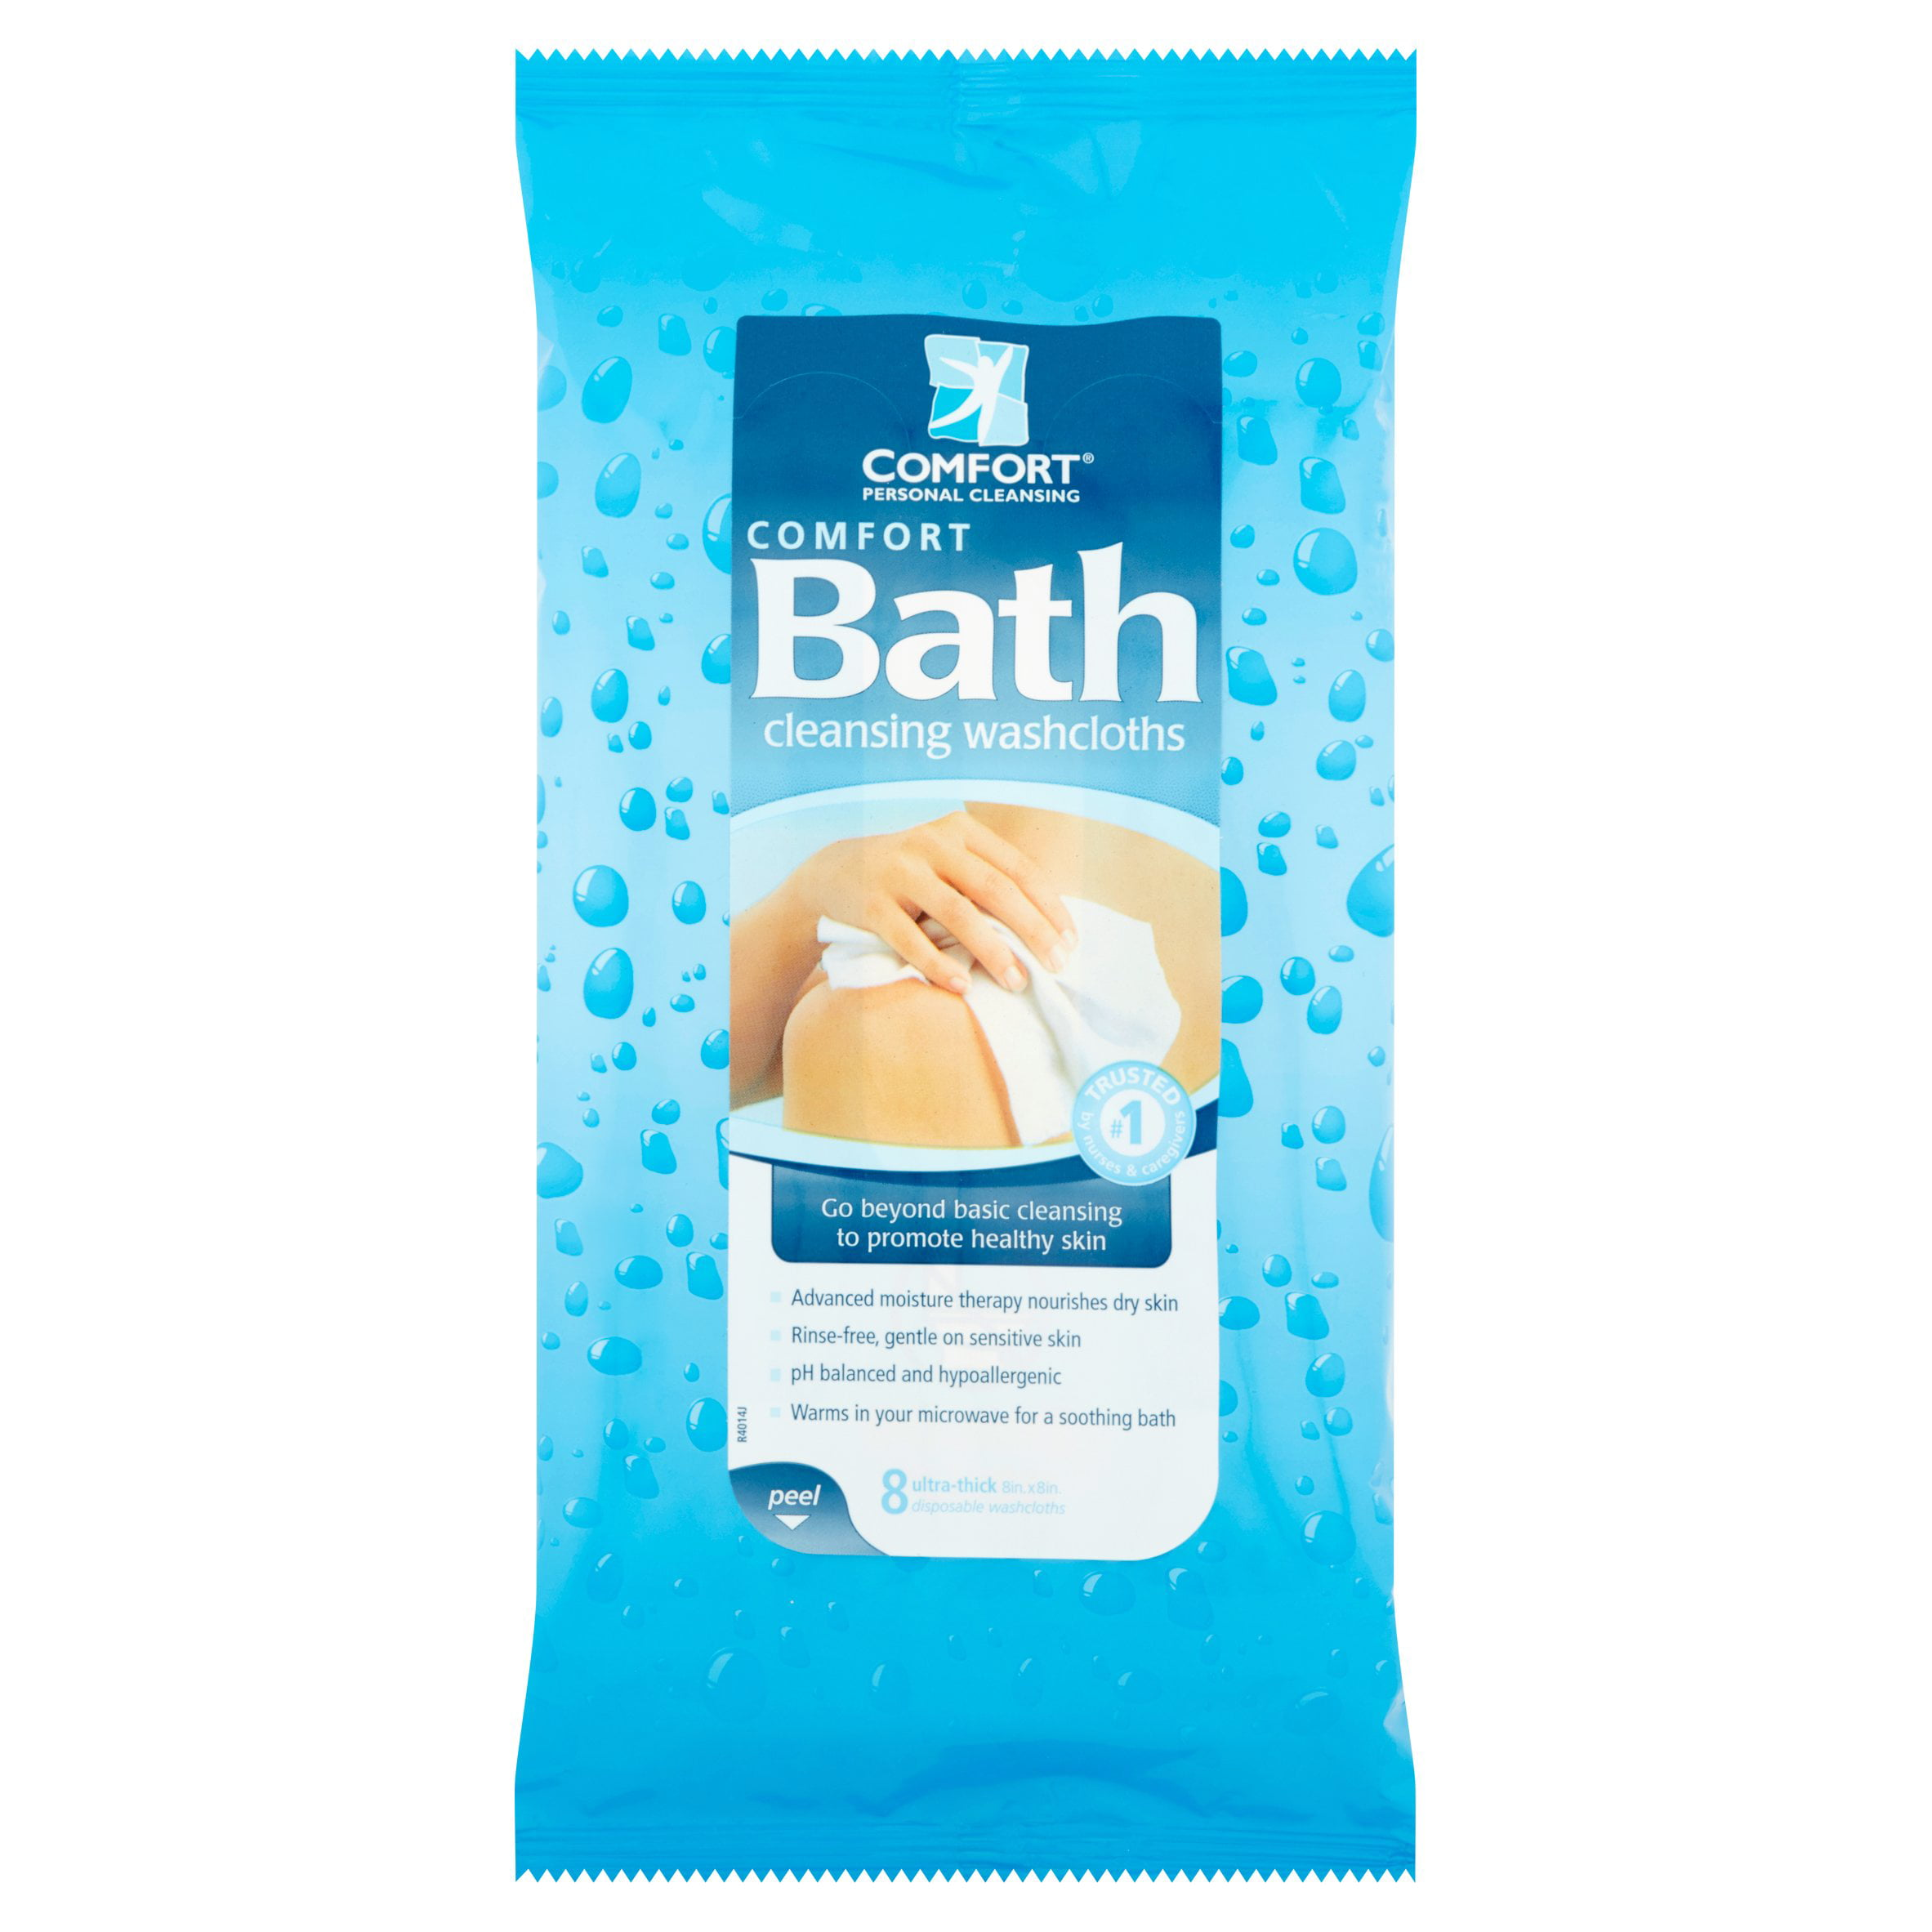 Comfort Bath Cleansing Washcloths - Ultra Thick Disposable 8\